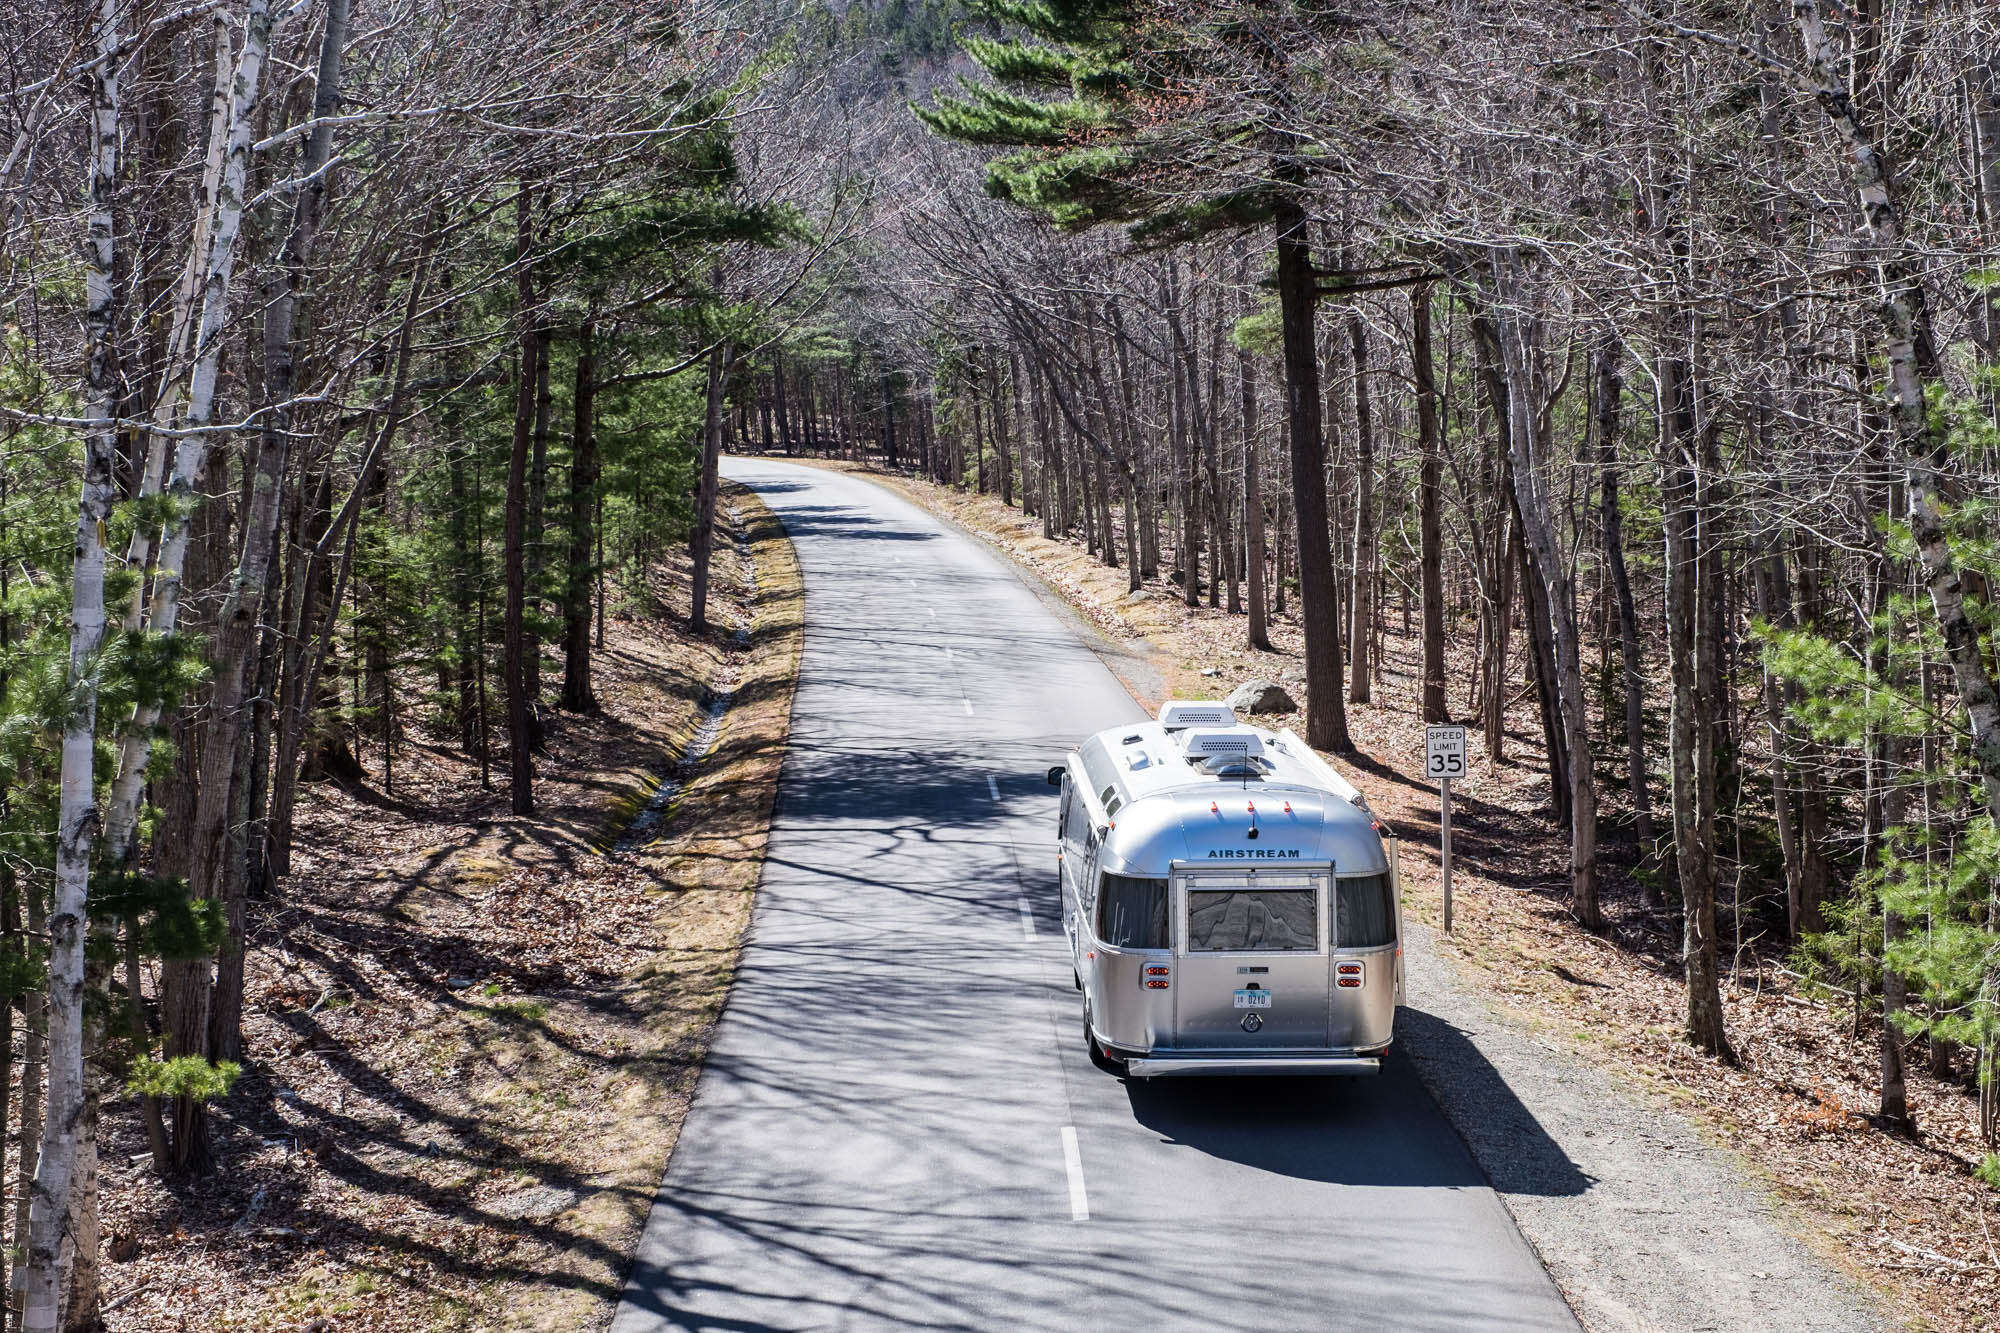 We drove the park loop road several times, almost always with our trailer in tow.